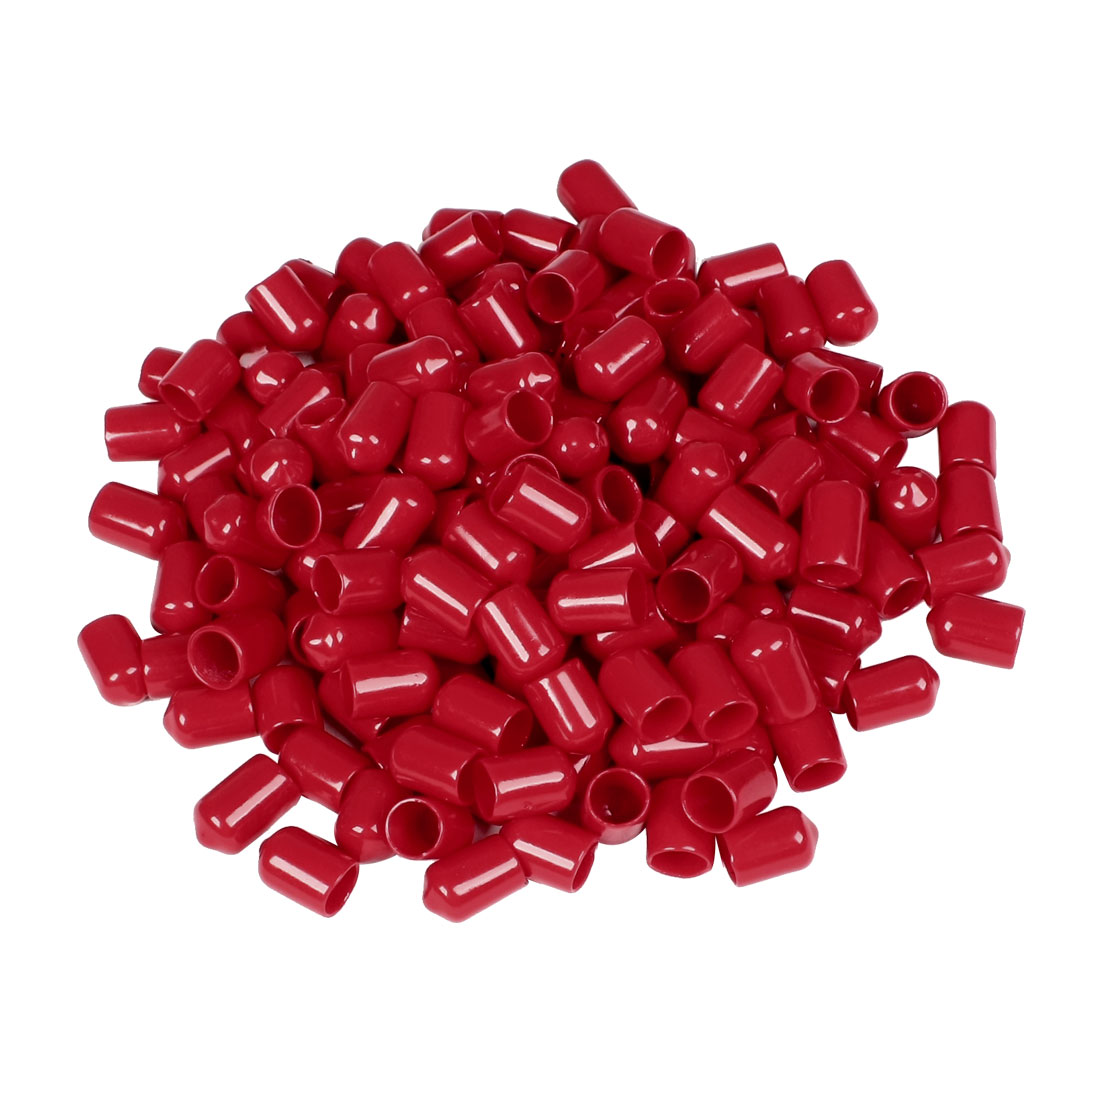 200 Pcs 17mm Height 10mm Inner Dia Round Tip Red PVC Insulated End Caps